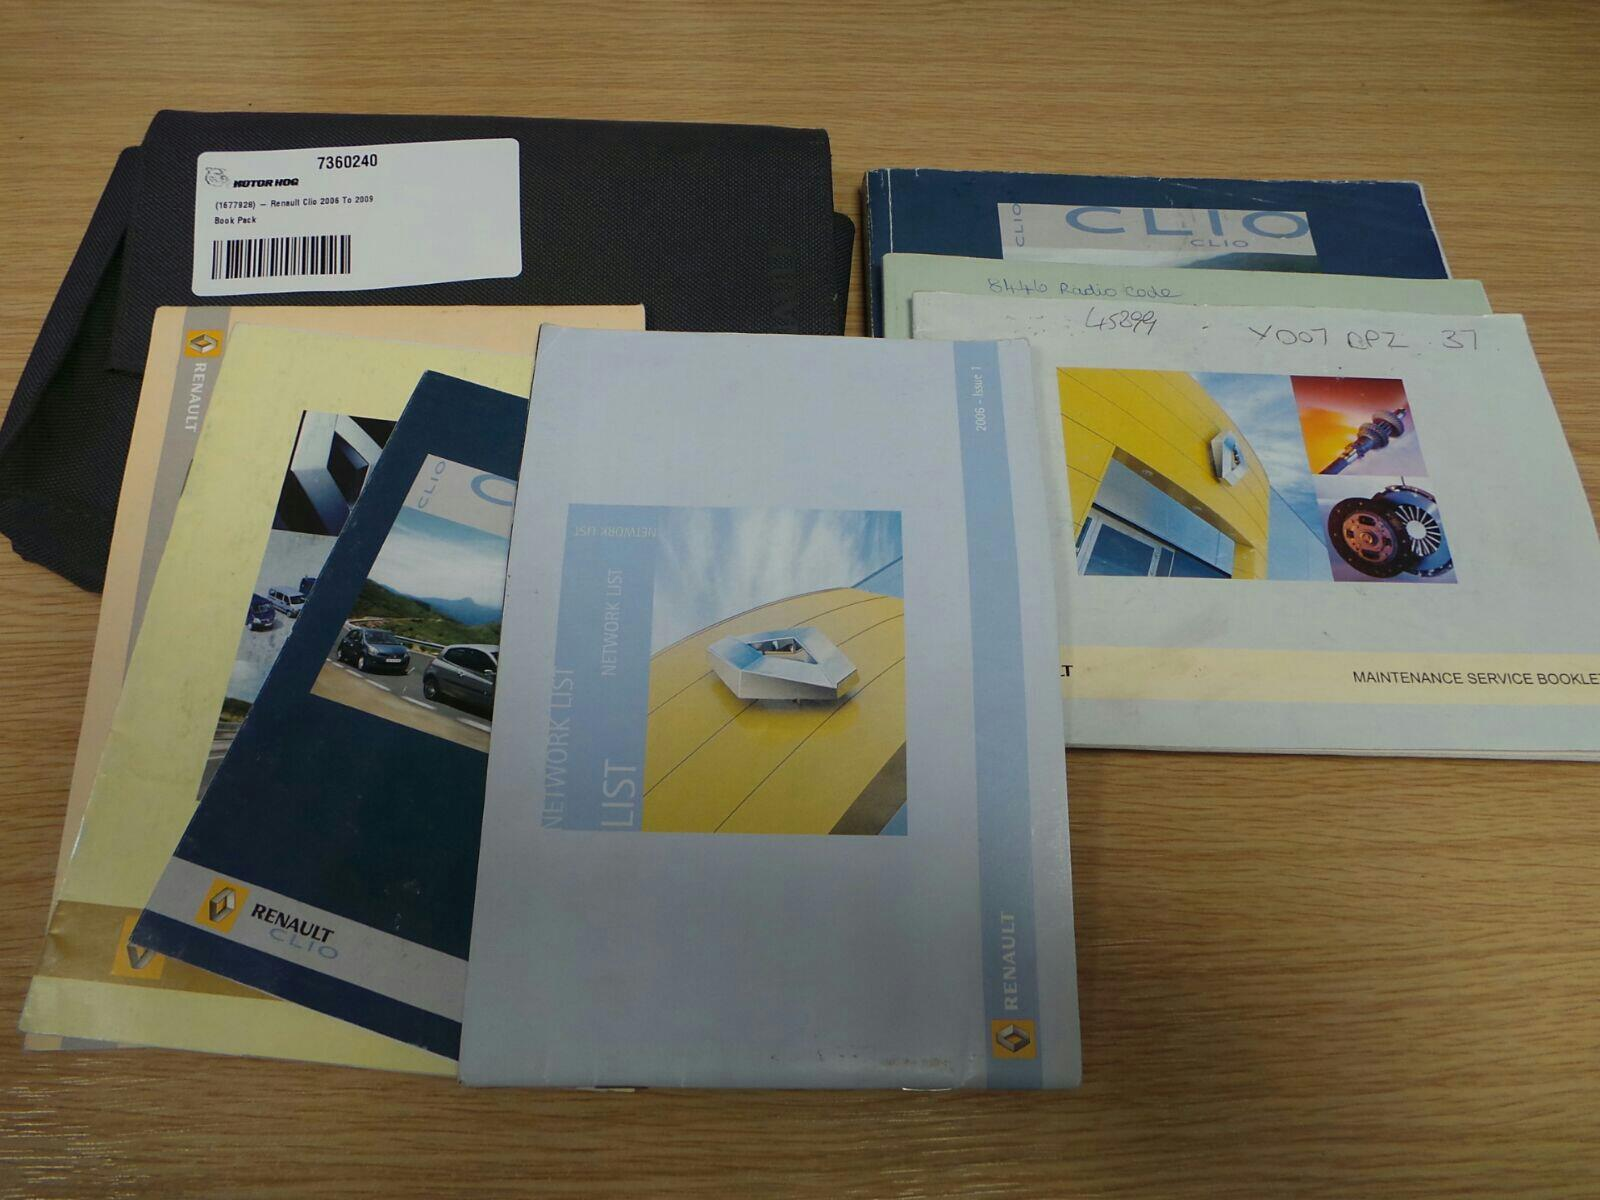 Renault Clio 2006 To 2009 Book Pack (Petrol / Manual) for sale from